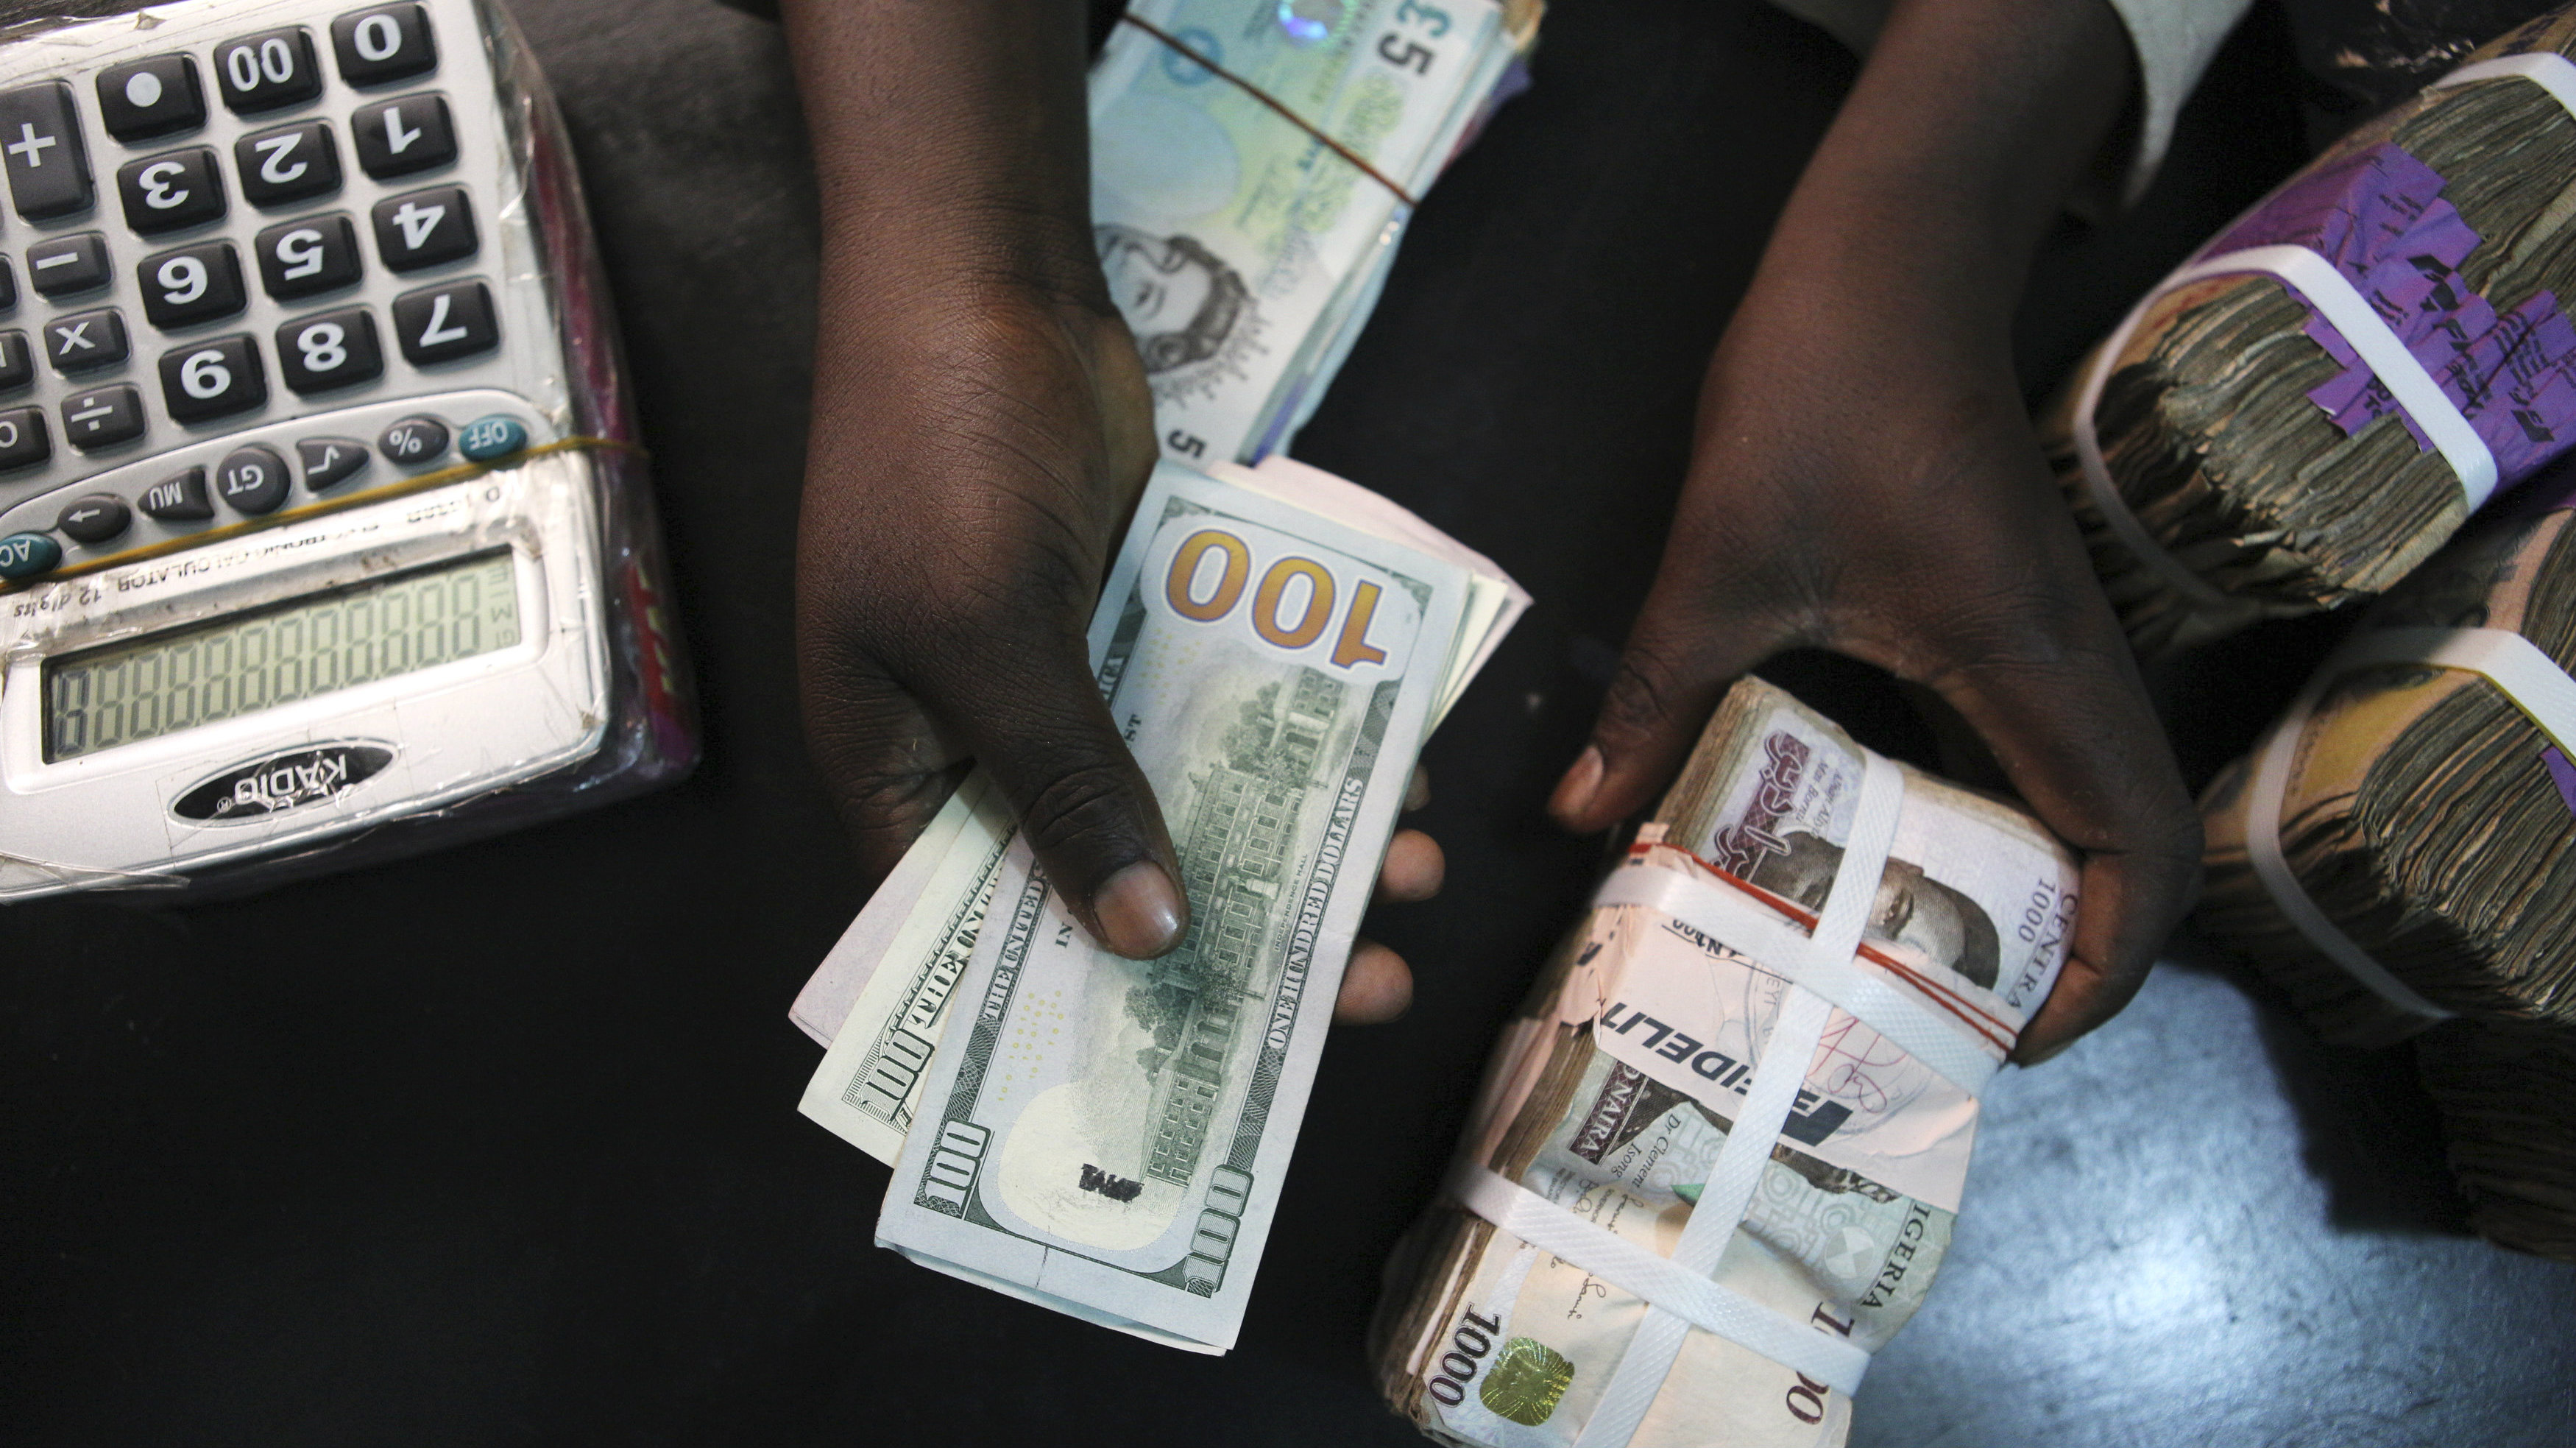 A trader changes dollars for Naira at a currency exchange store in Lagos, February 12, 2015. REUTERS/Joe Penney (NIGERIA - Tags: ELECTIONS POLITICS BUSINESS)